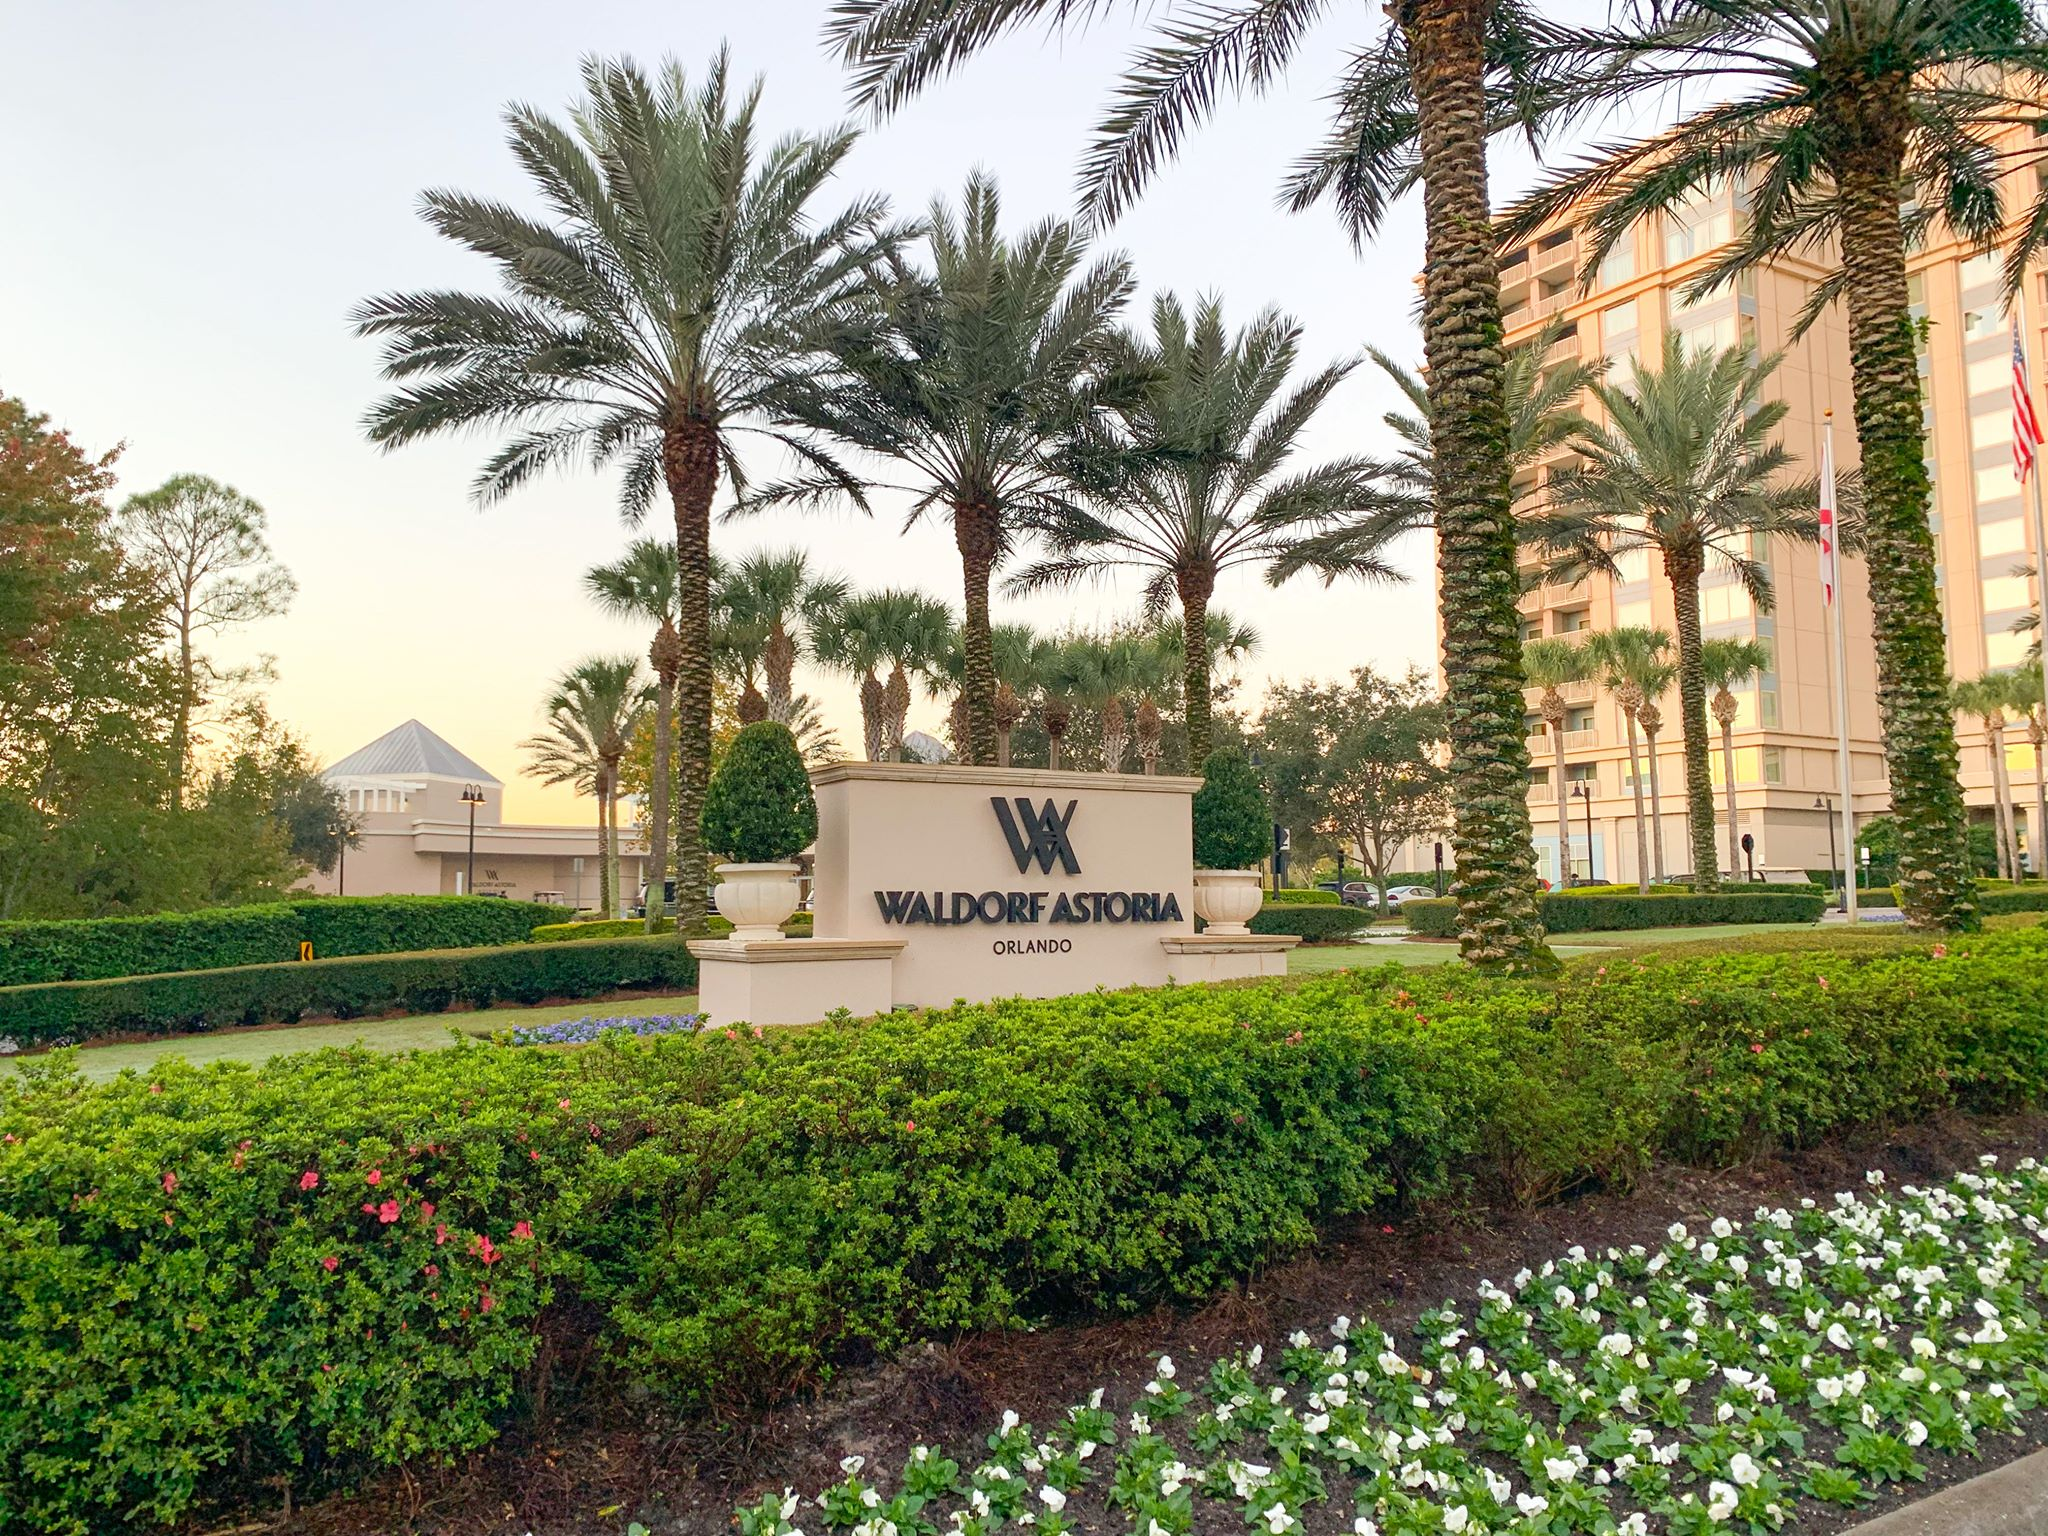 Waldorf Astoria Orlando front entry